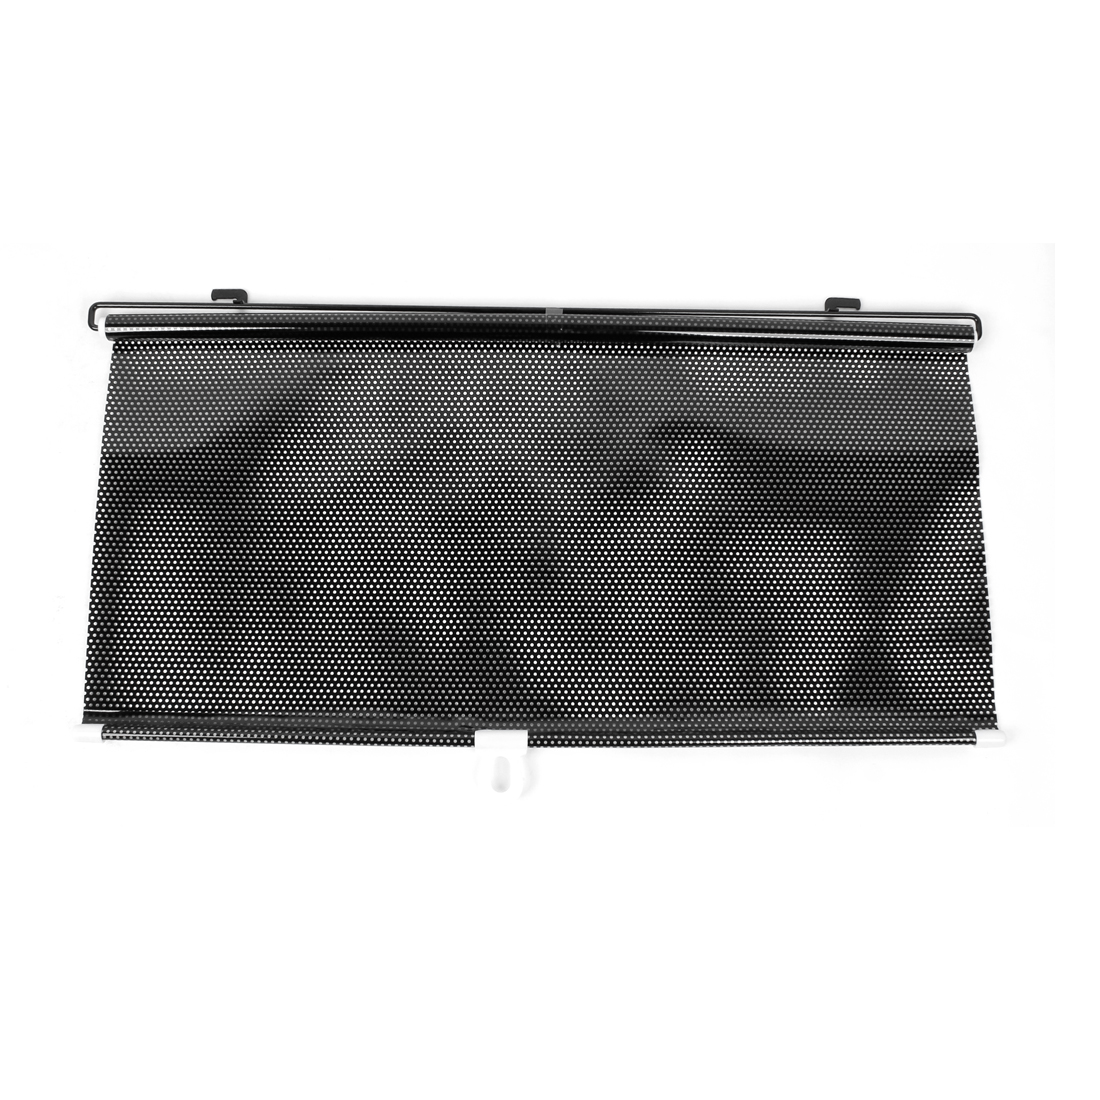 Auto Car Retractable Roll Blind Side Window Sun Shade Black 130cm x 58cm